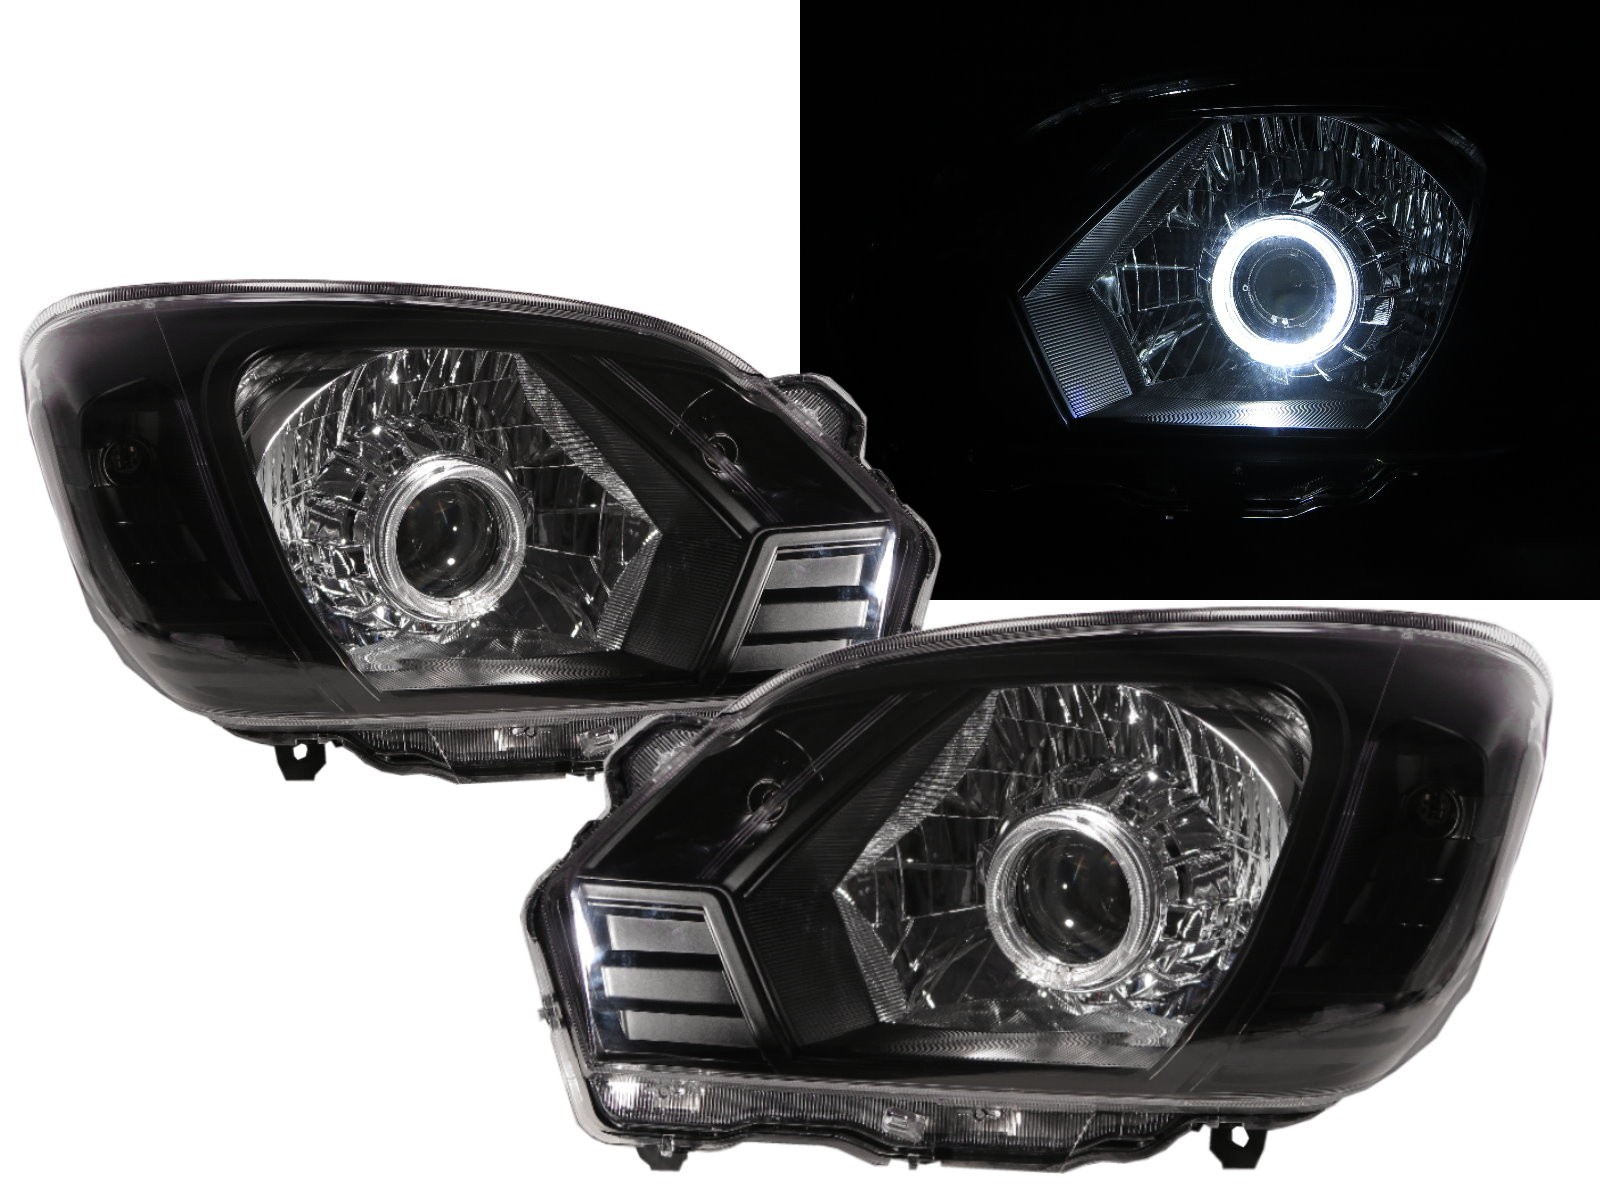 CrazyTheGod Veryca 2013-present Truck 2D/4D Guide LED Angel-Eye Headlight Headlamp Black for Mitsubishi RHD